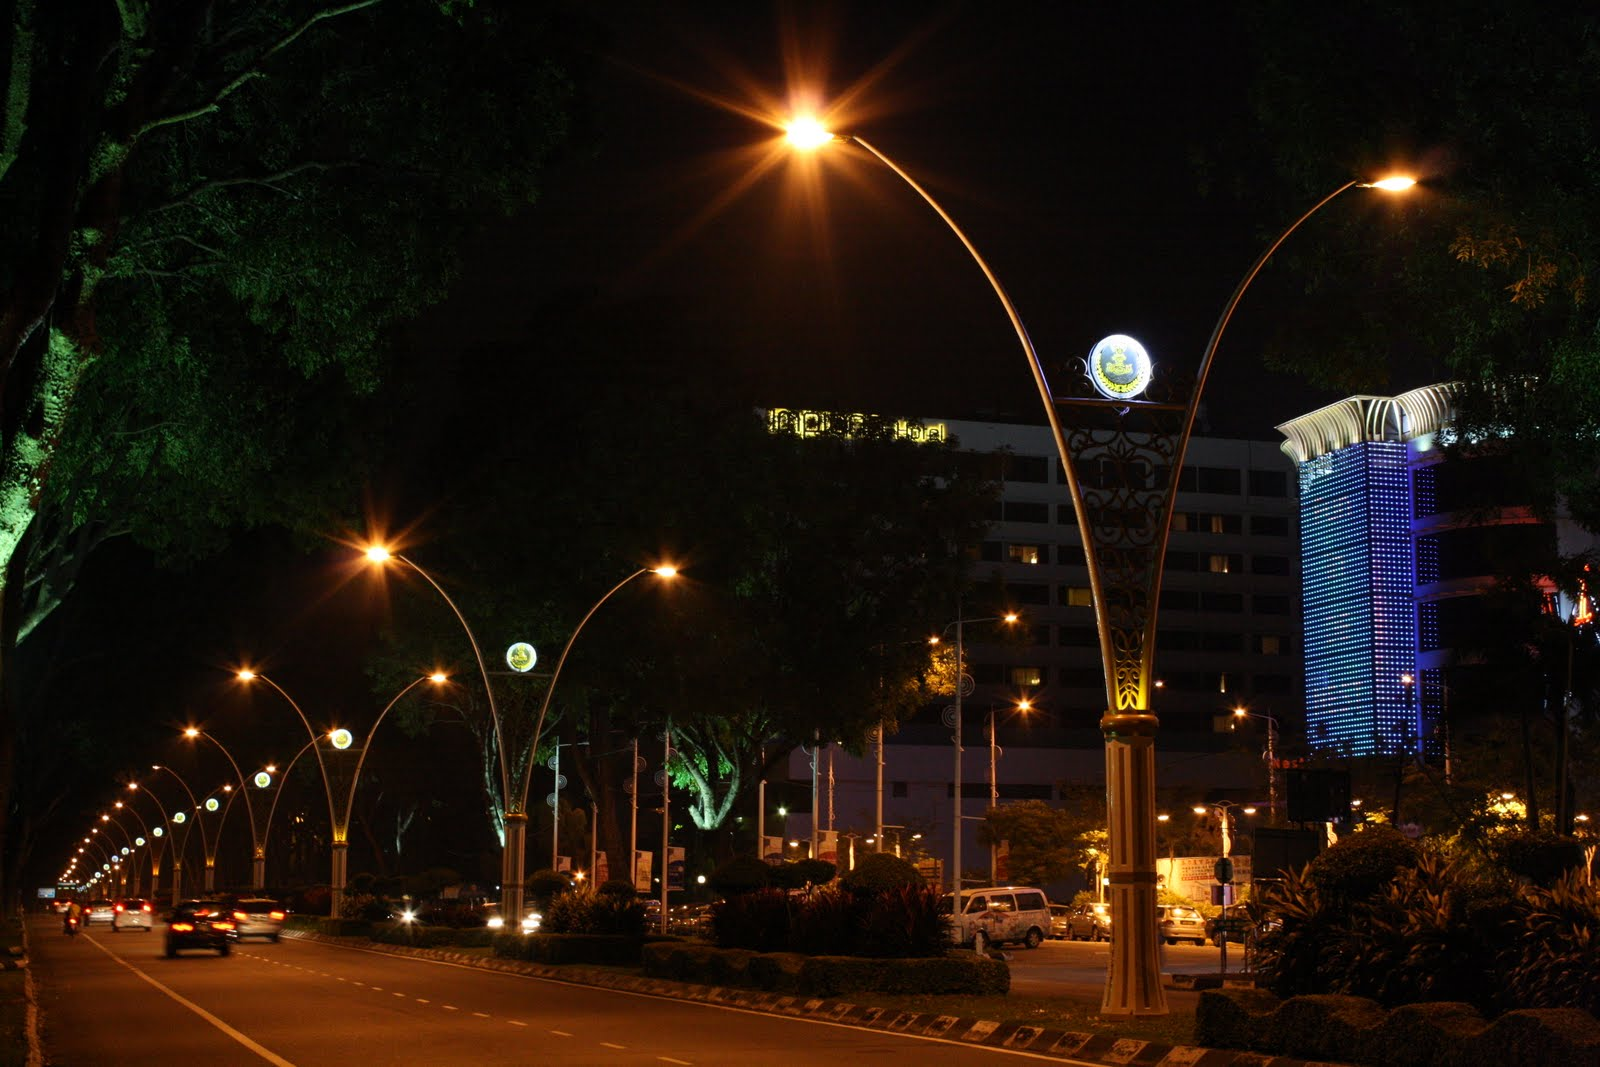 Images of Ipoh: Artistic Lamp Post for Road Lamp At Night  111bof